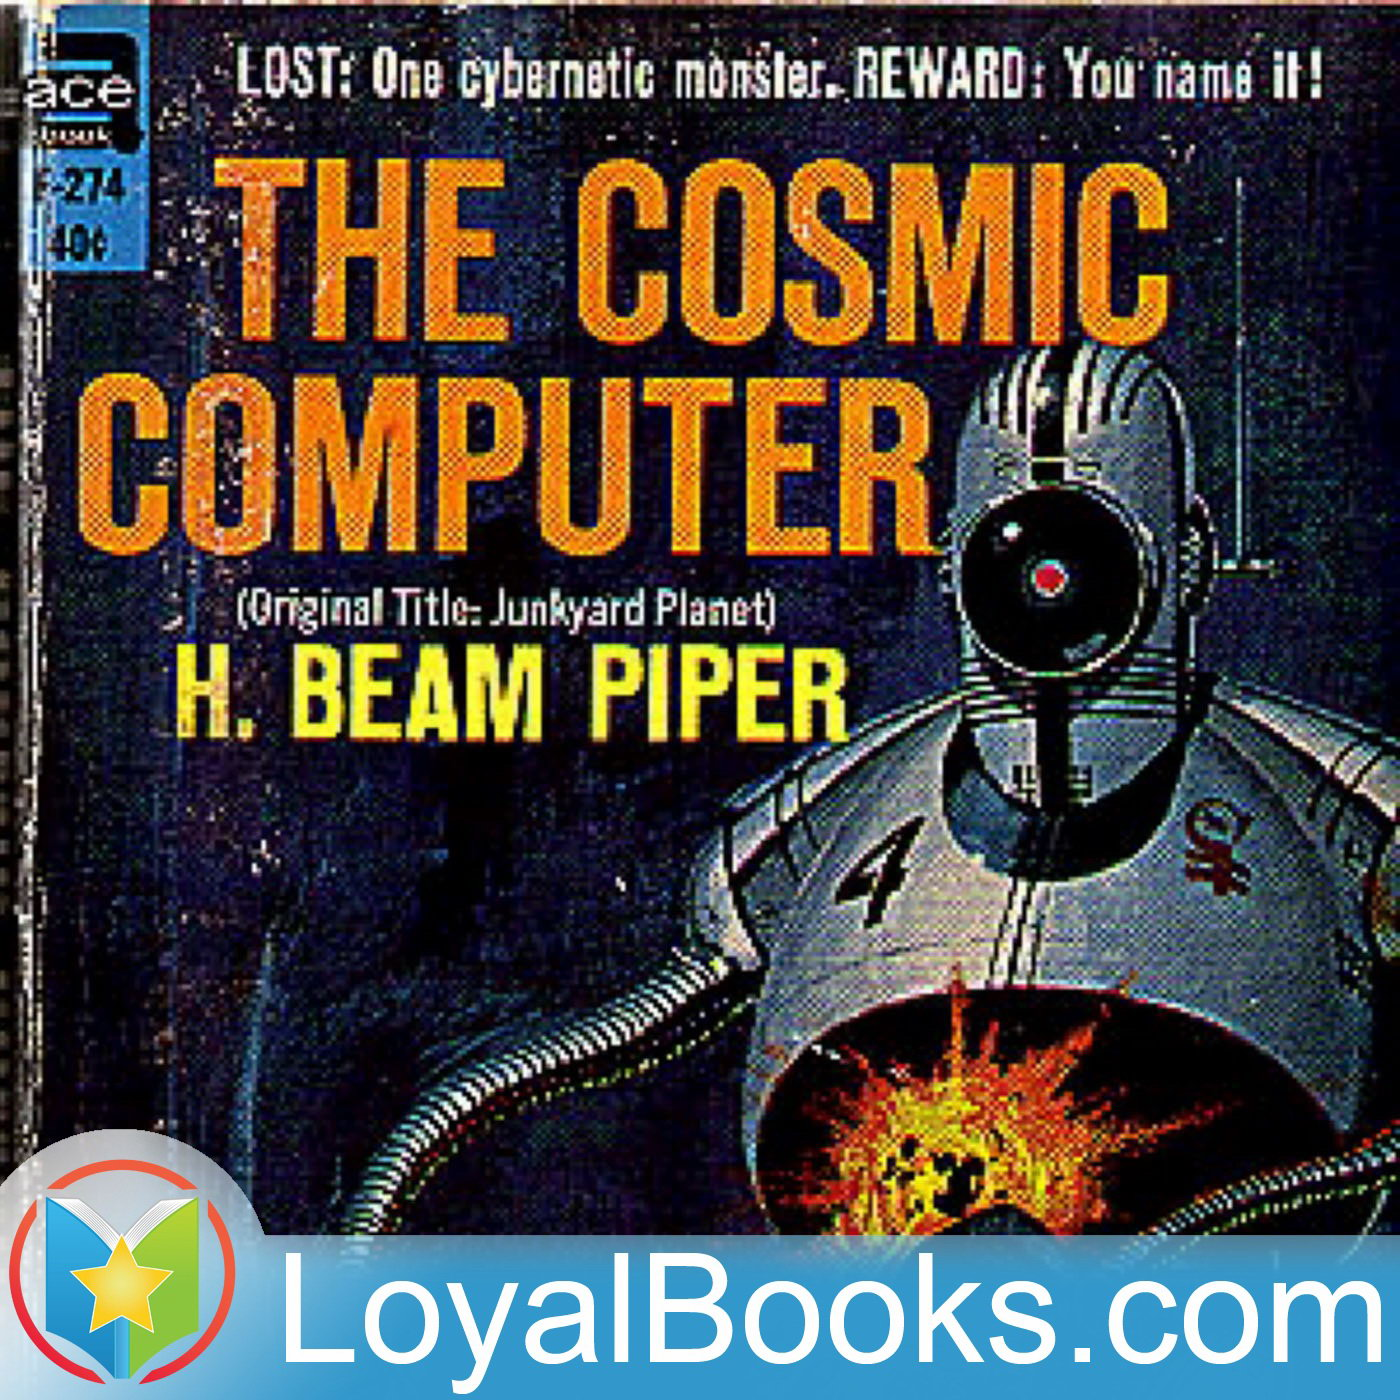 <![CDATA[The Cosmic Computer by H. Beam Piper]]>